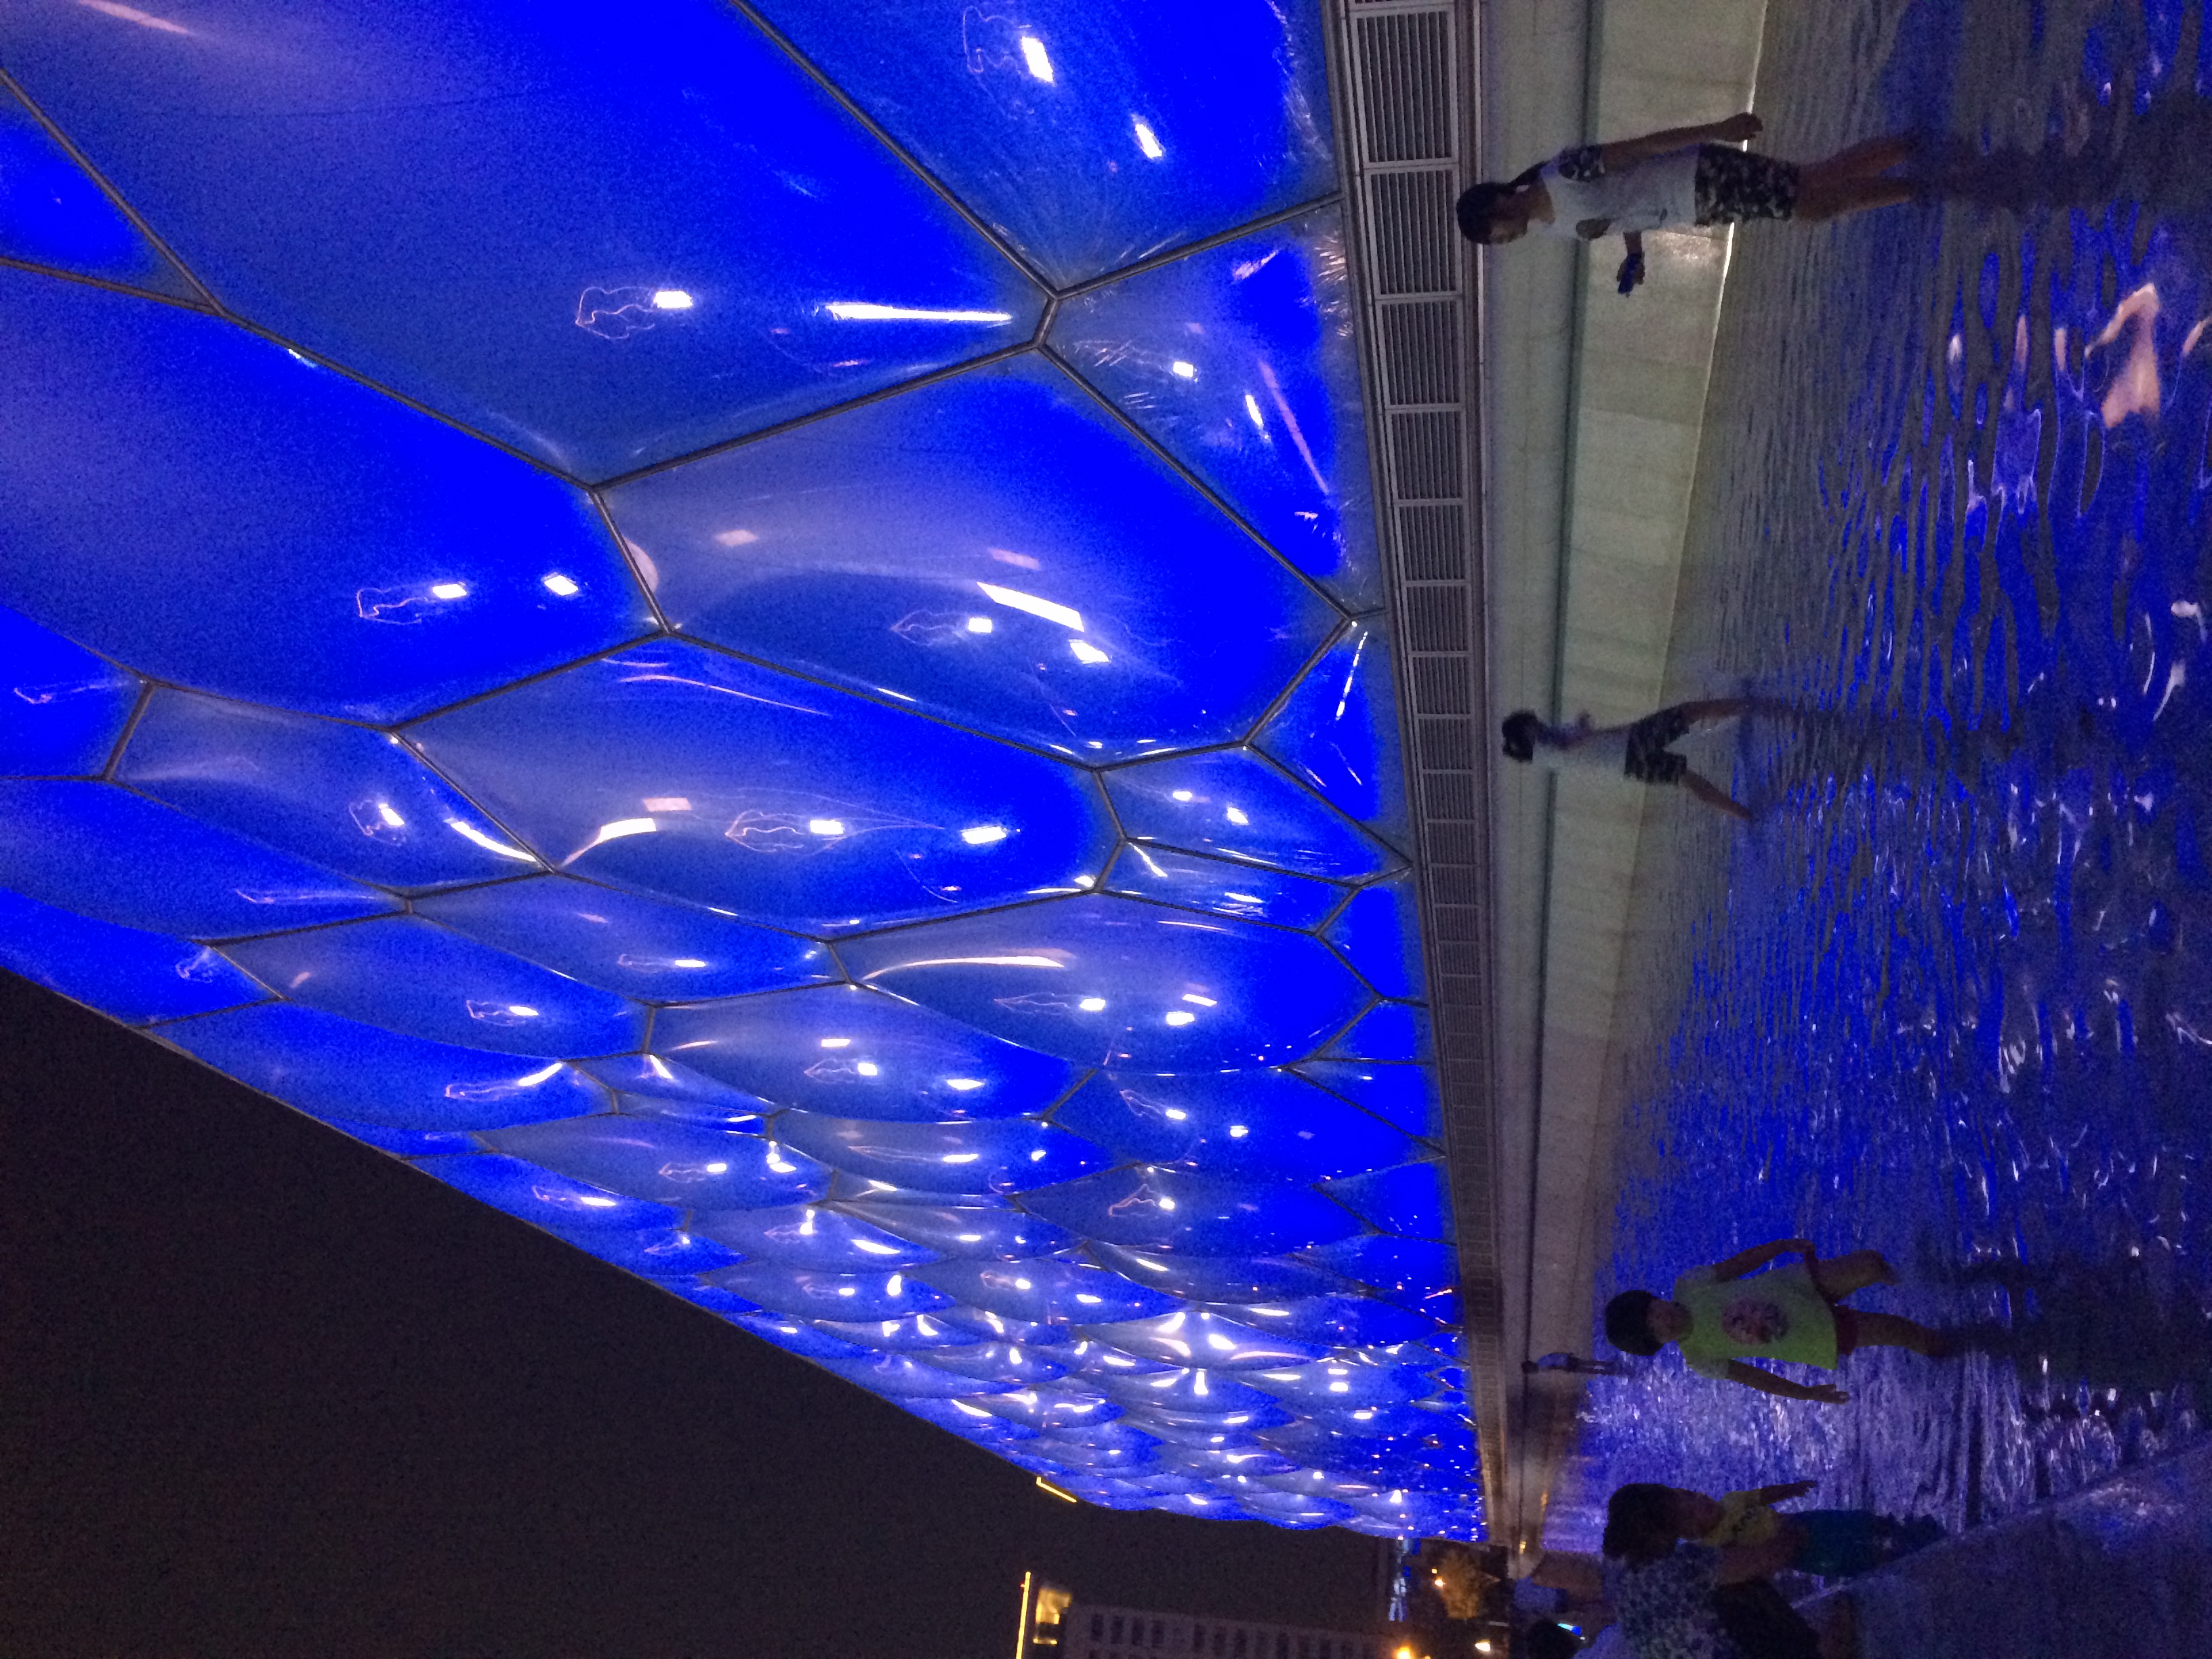 The Water Cube at night